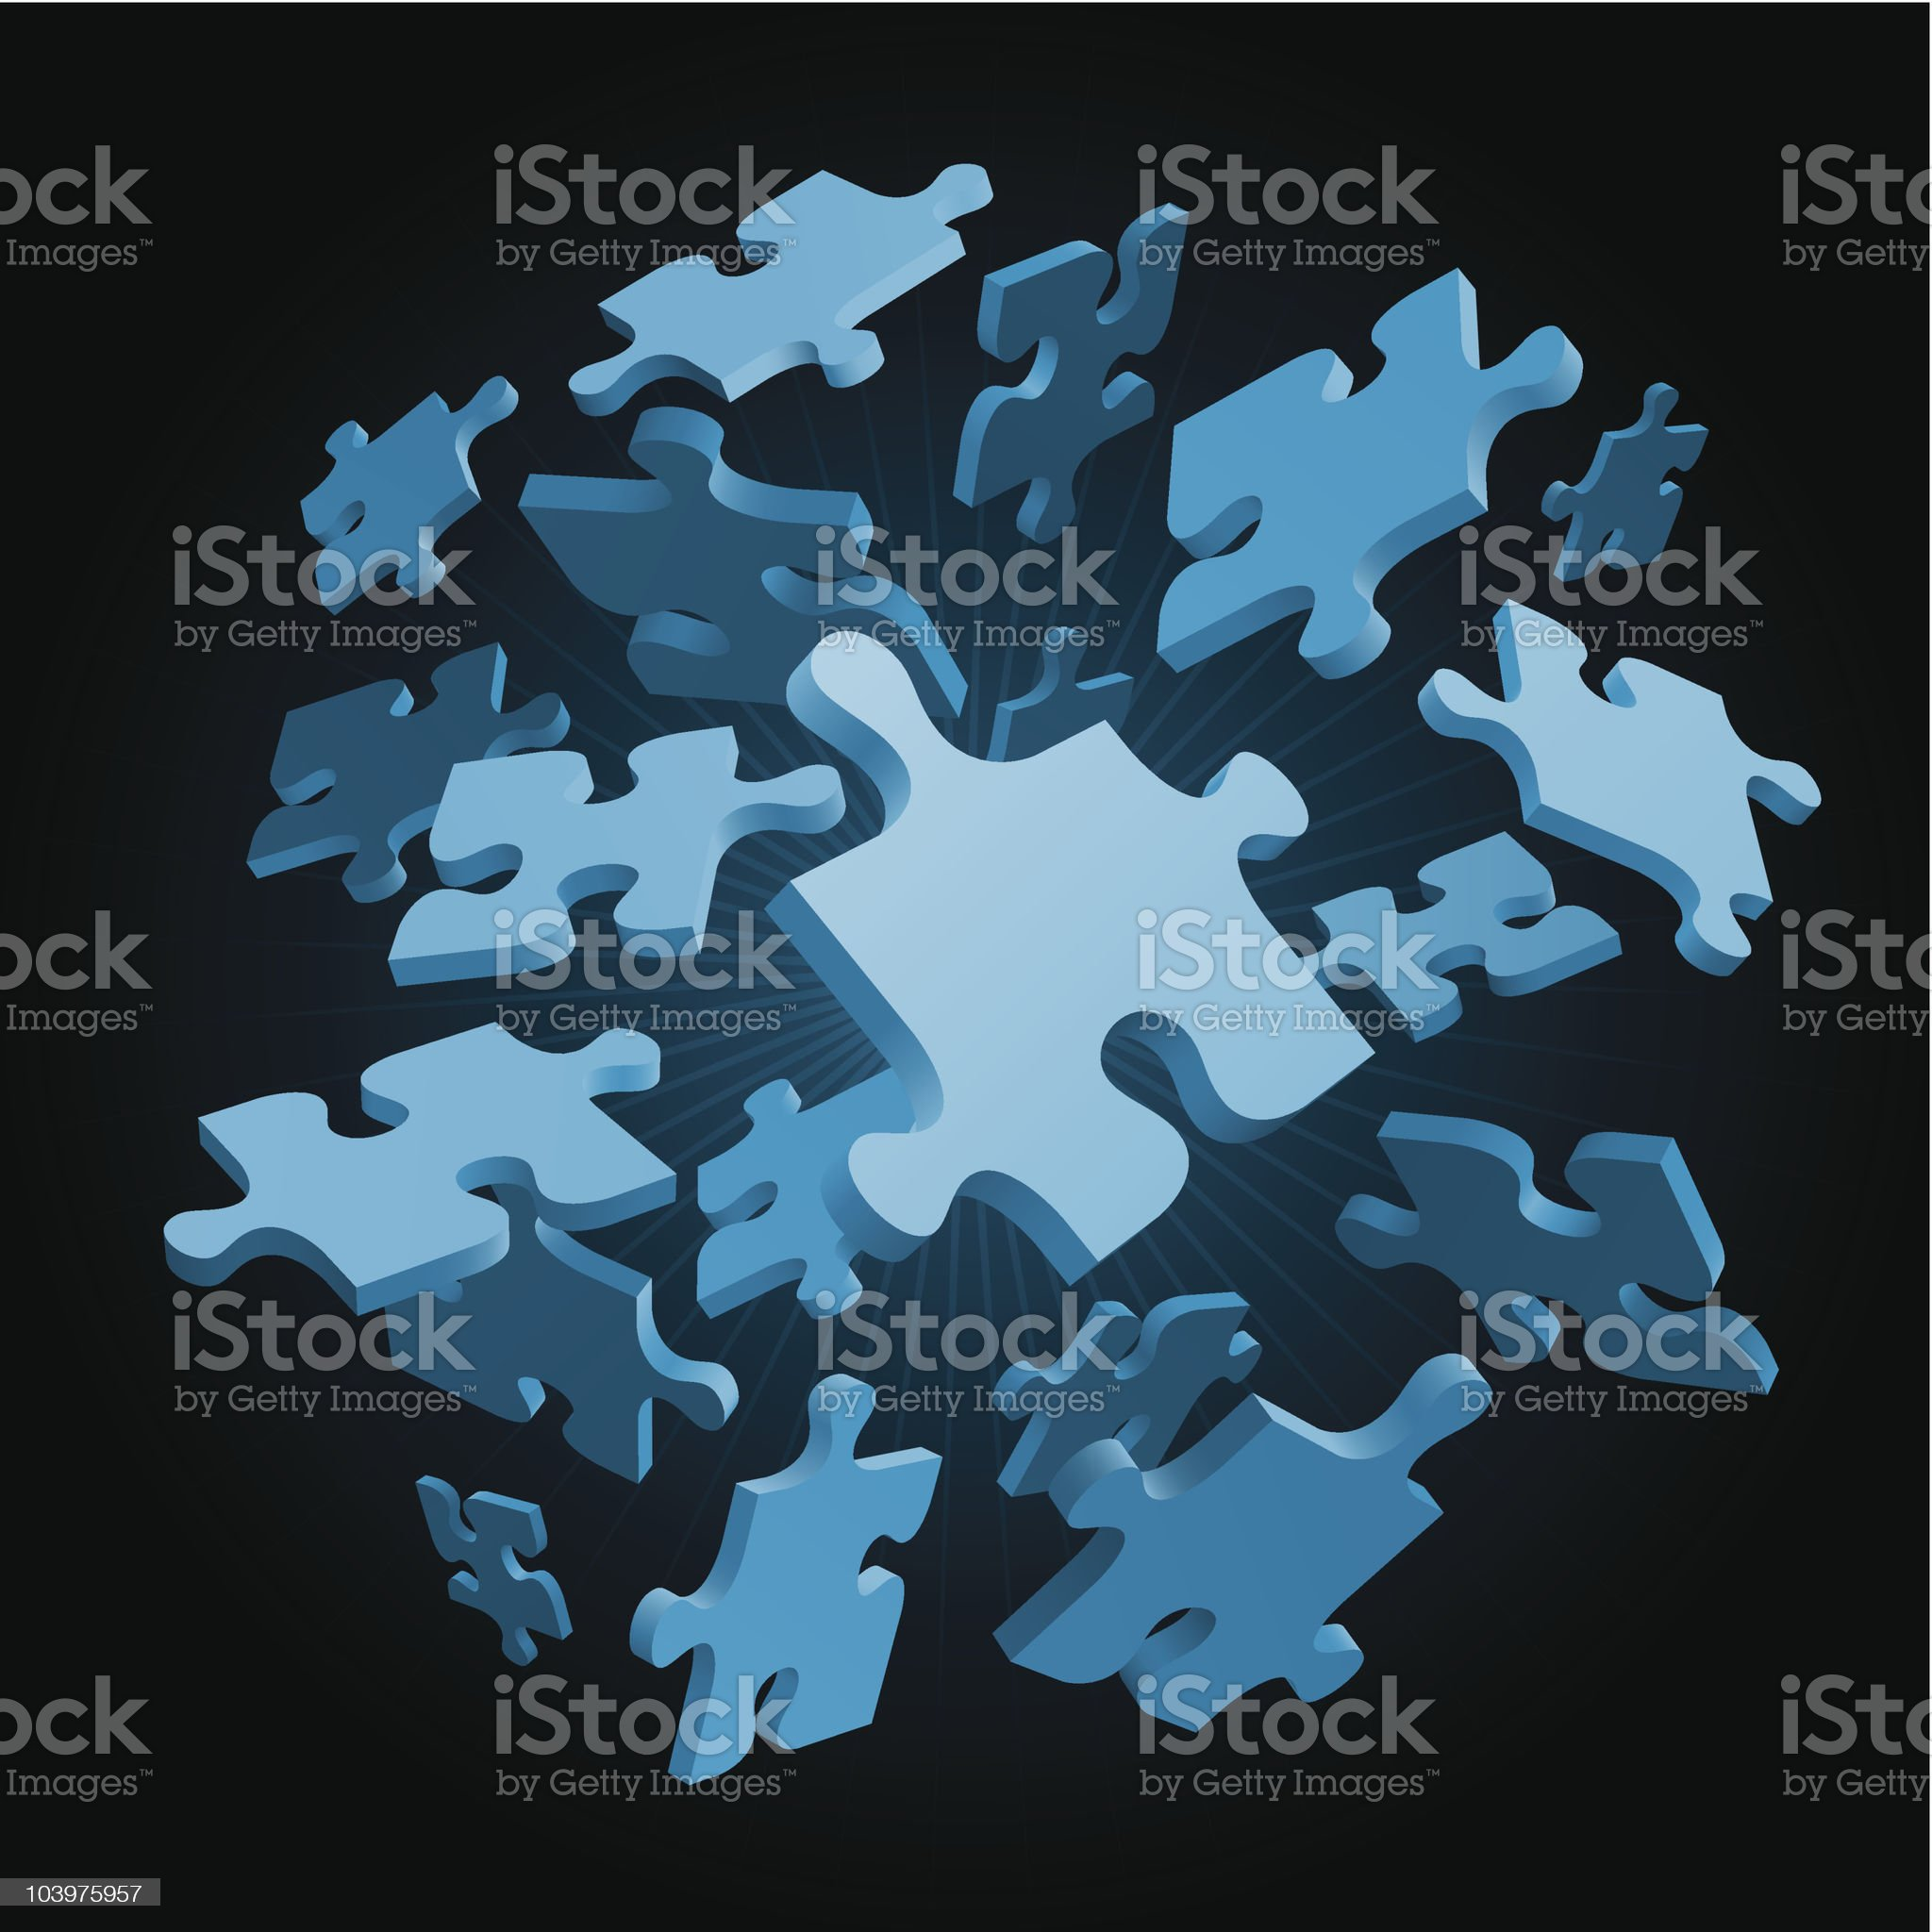 Floating puzzle pieces royalty-free stock vector art